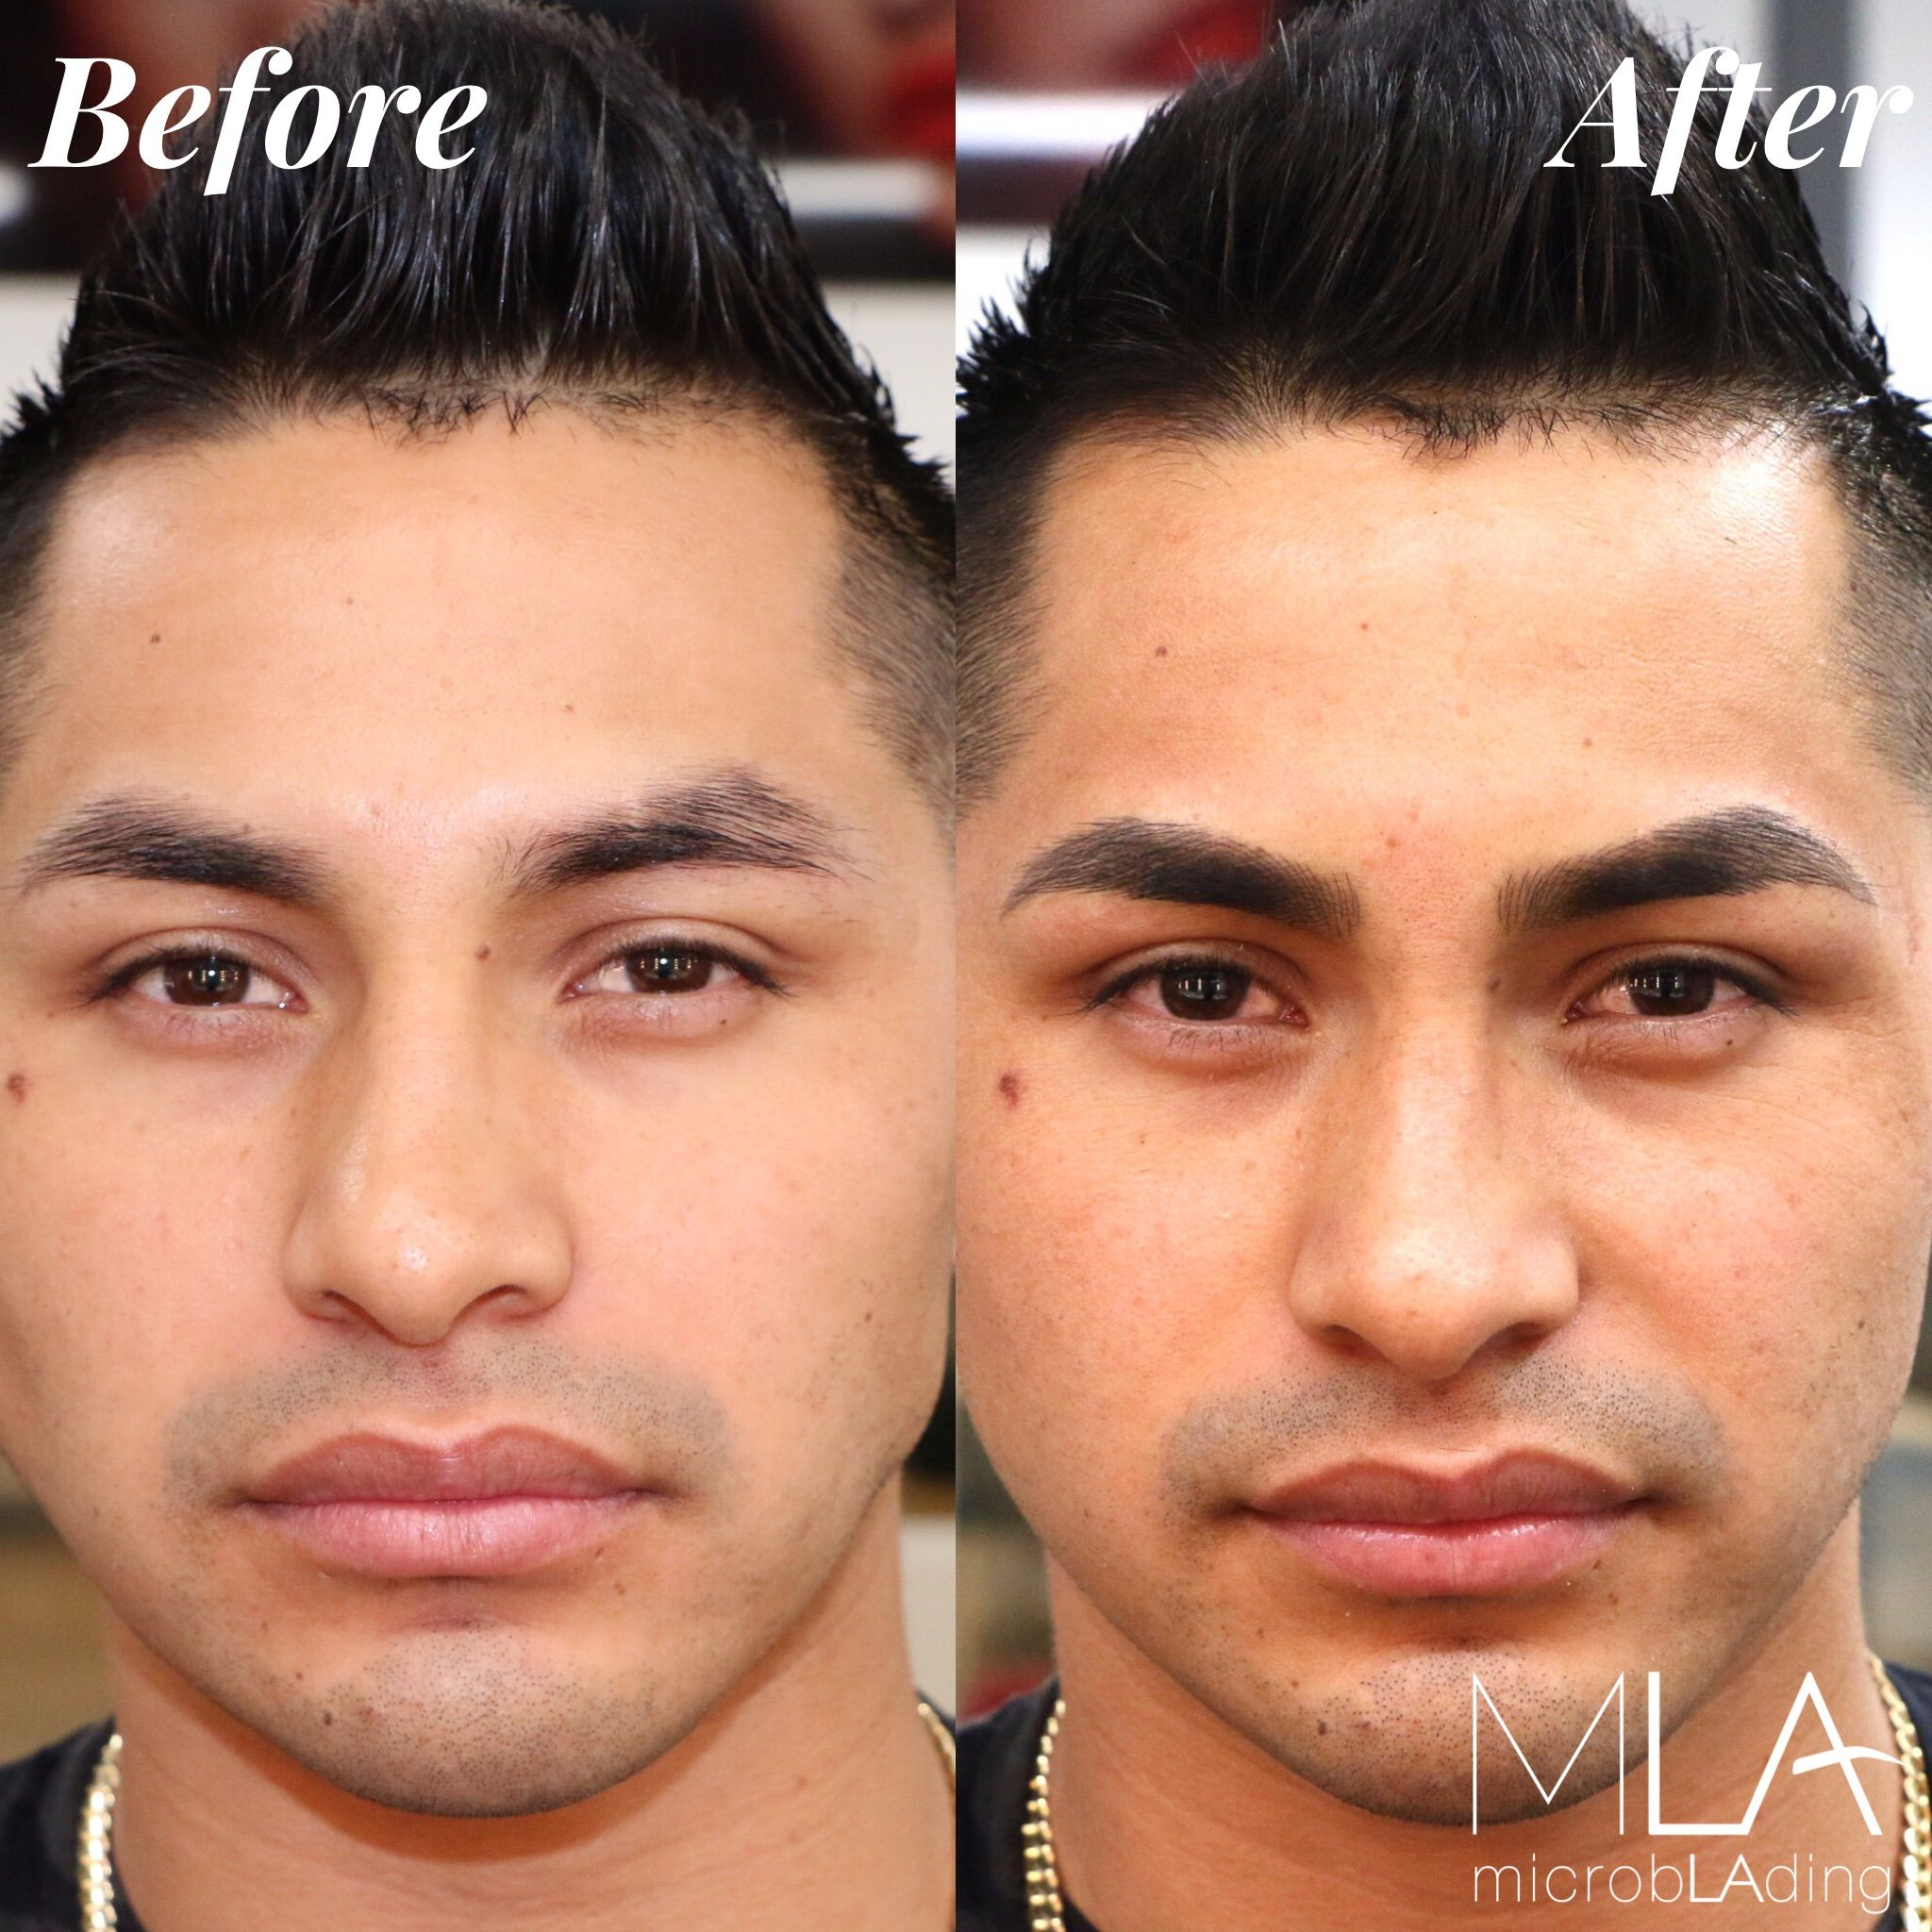 All of our eyebrows are customized for each client